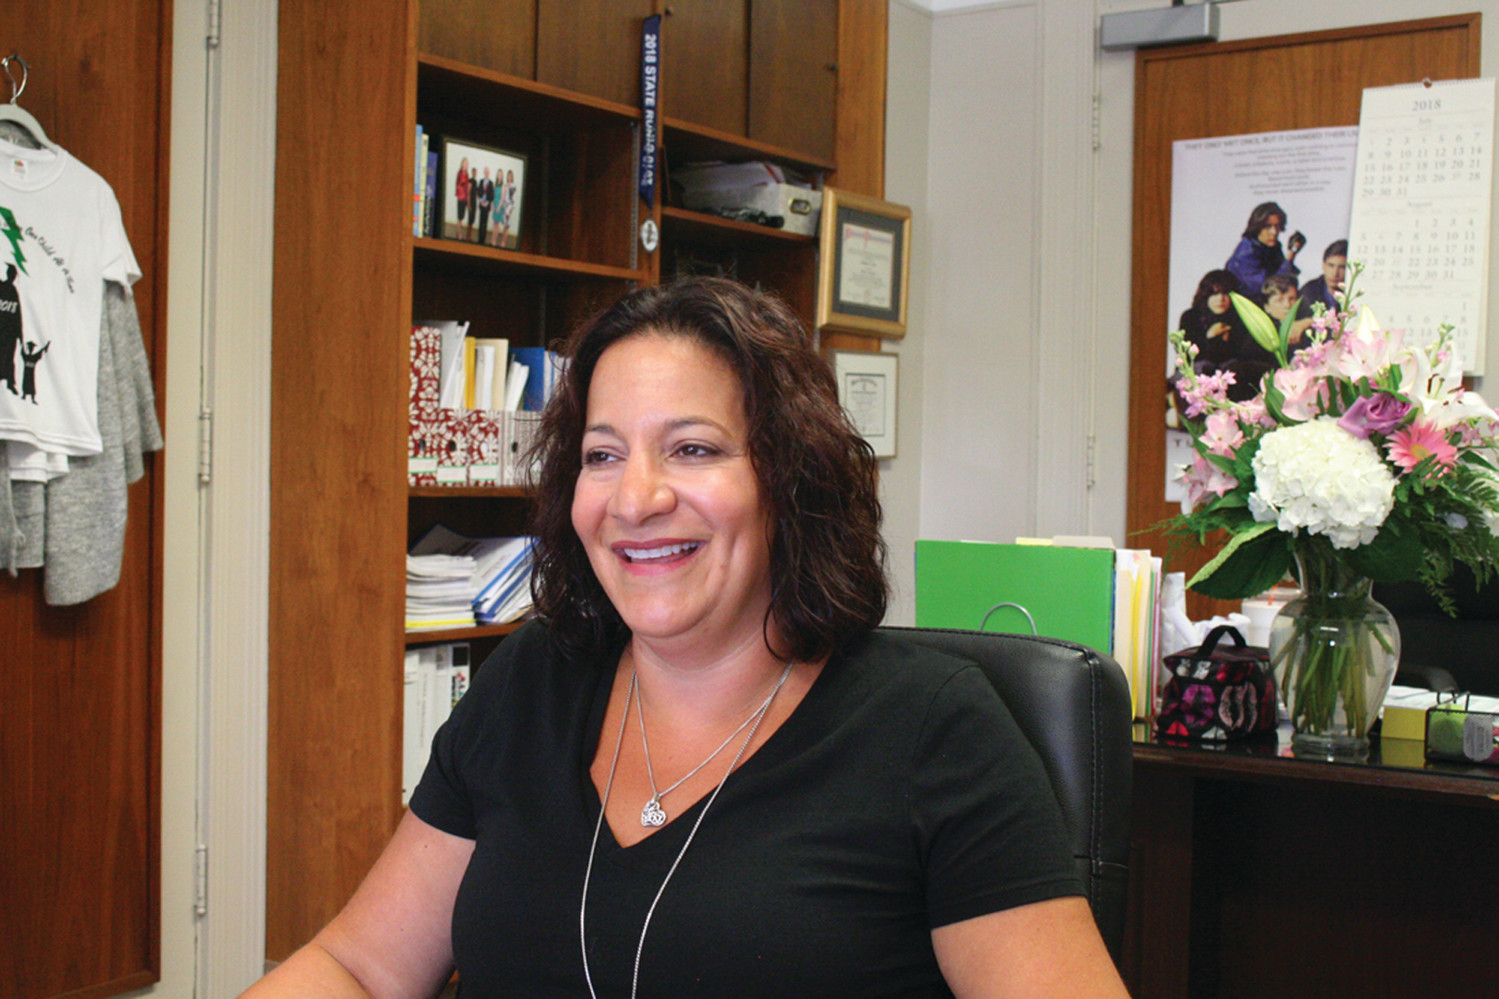 READY FOR A NEW CHAPTER: Superintendent Jeannine Nota, now in her fourth year in the post, is ready for the changes coming to Cranston schools.